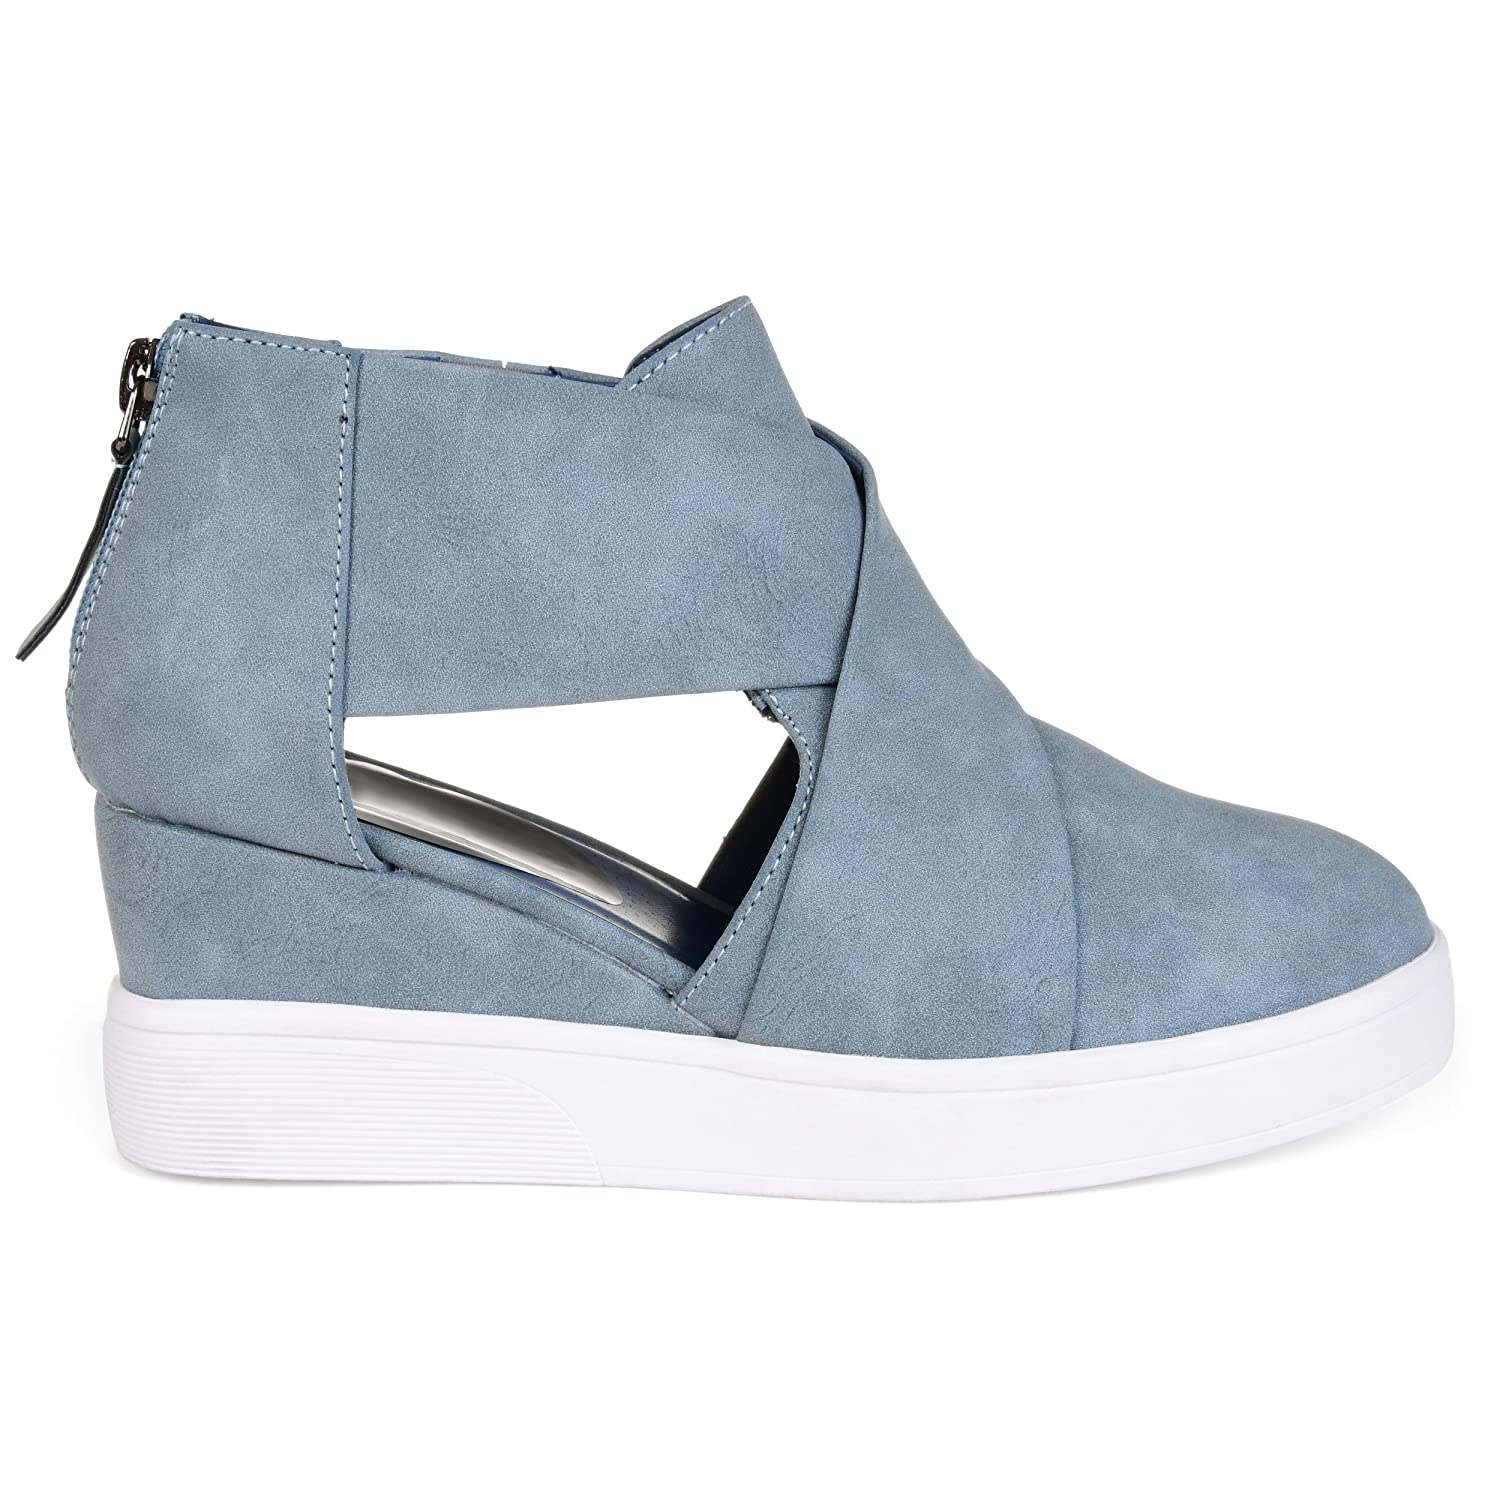 c18780ed277ce Brinley Co. Womens SEB Athleisure D'Orsay Criss-Cross Sneaker Wedges